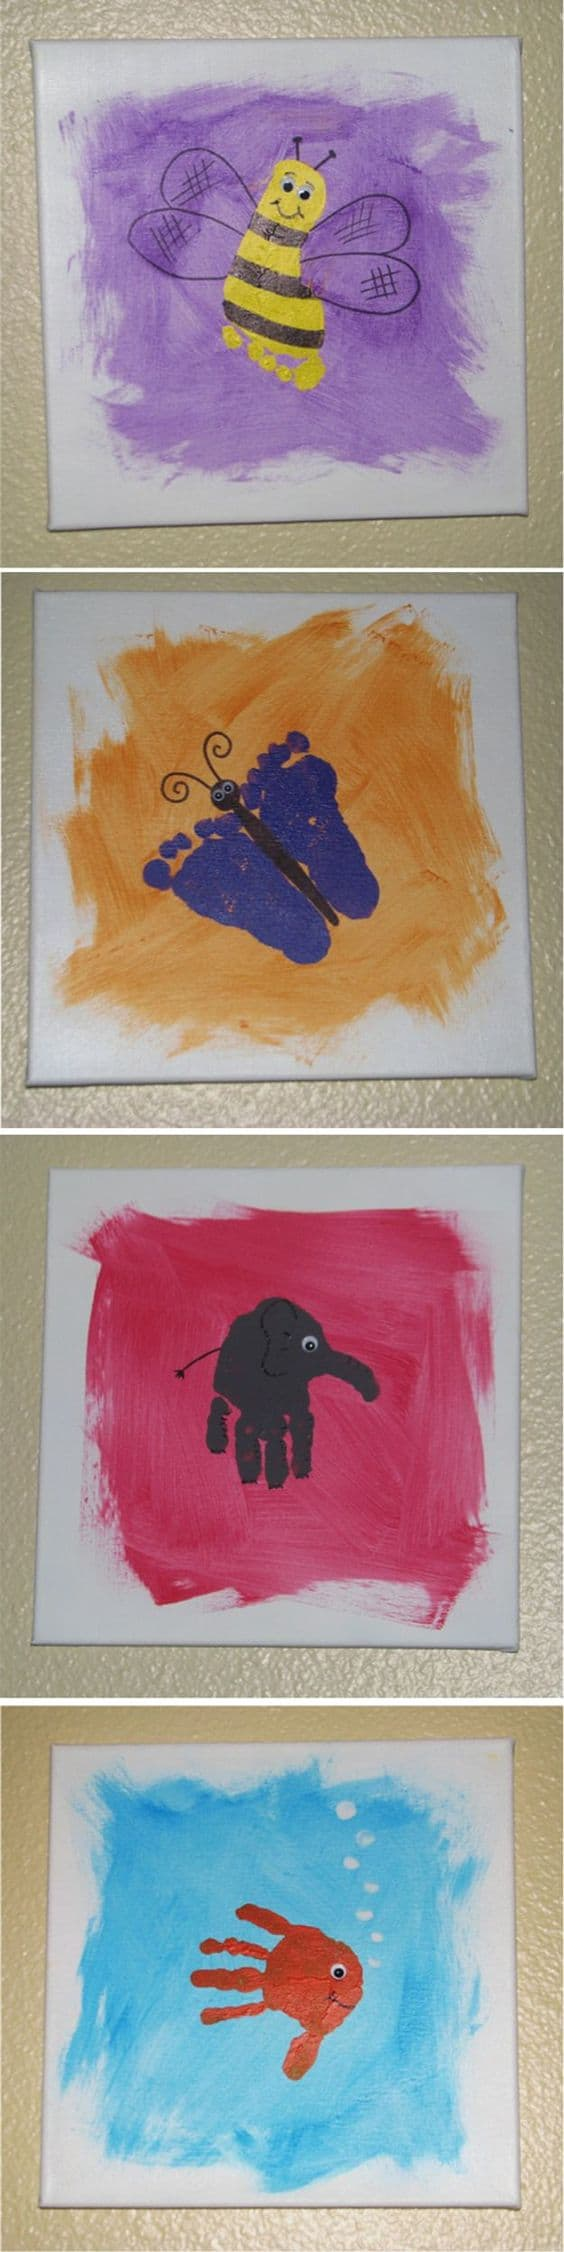 #12 IMAGINE TEACHING KIDS TO CREATE PAINTINGS OF THEIR FAVORITE ANIMAL OR CREATURE